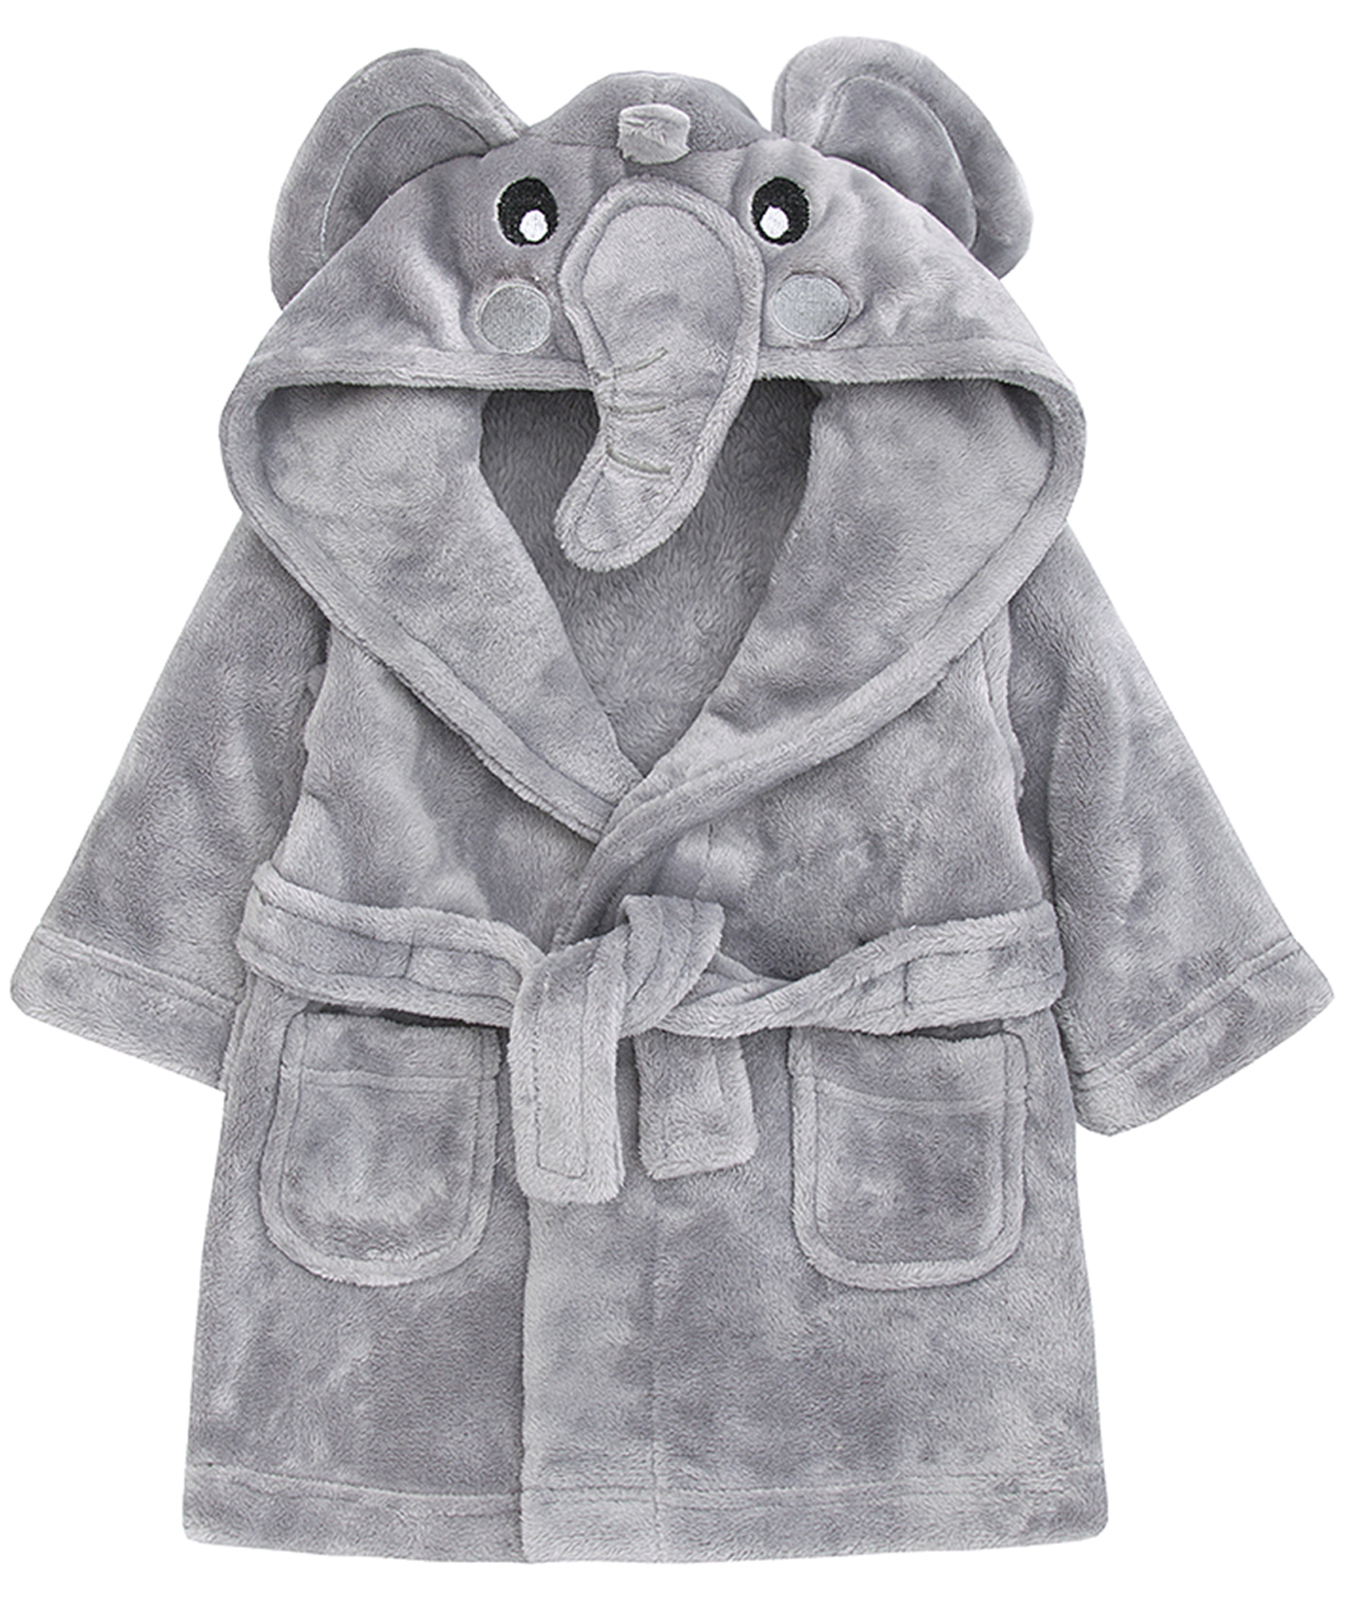 Make bath time fun with this Just Born robe and booties set. The soft fabric of this boys' robe keeps him dry and comfy, while the cute appliques are sure to make a splash.